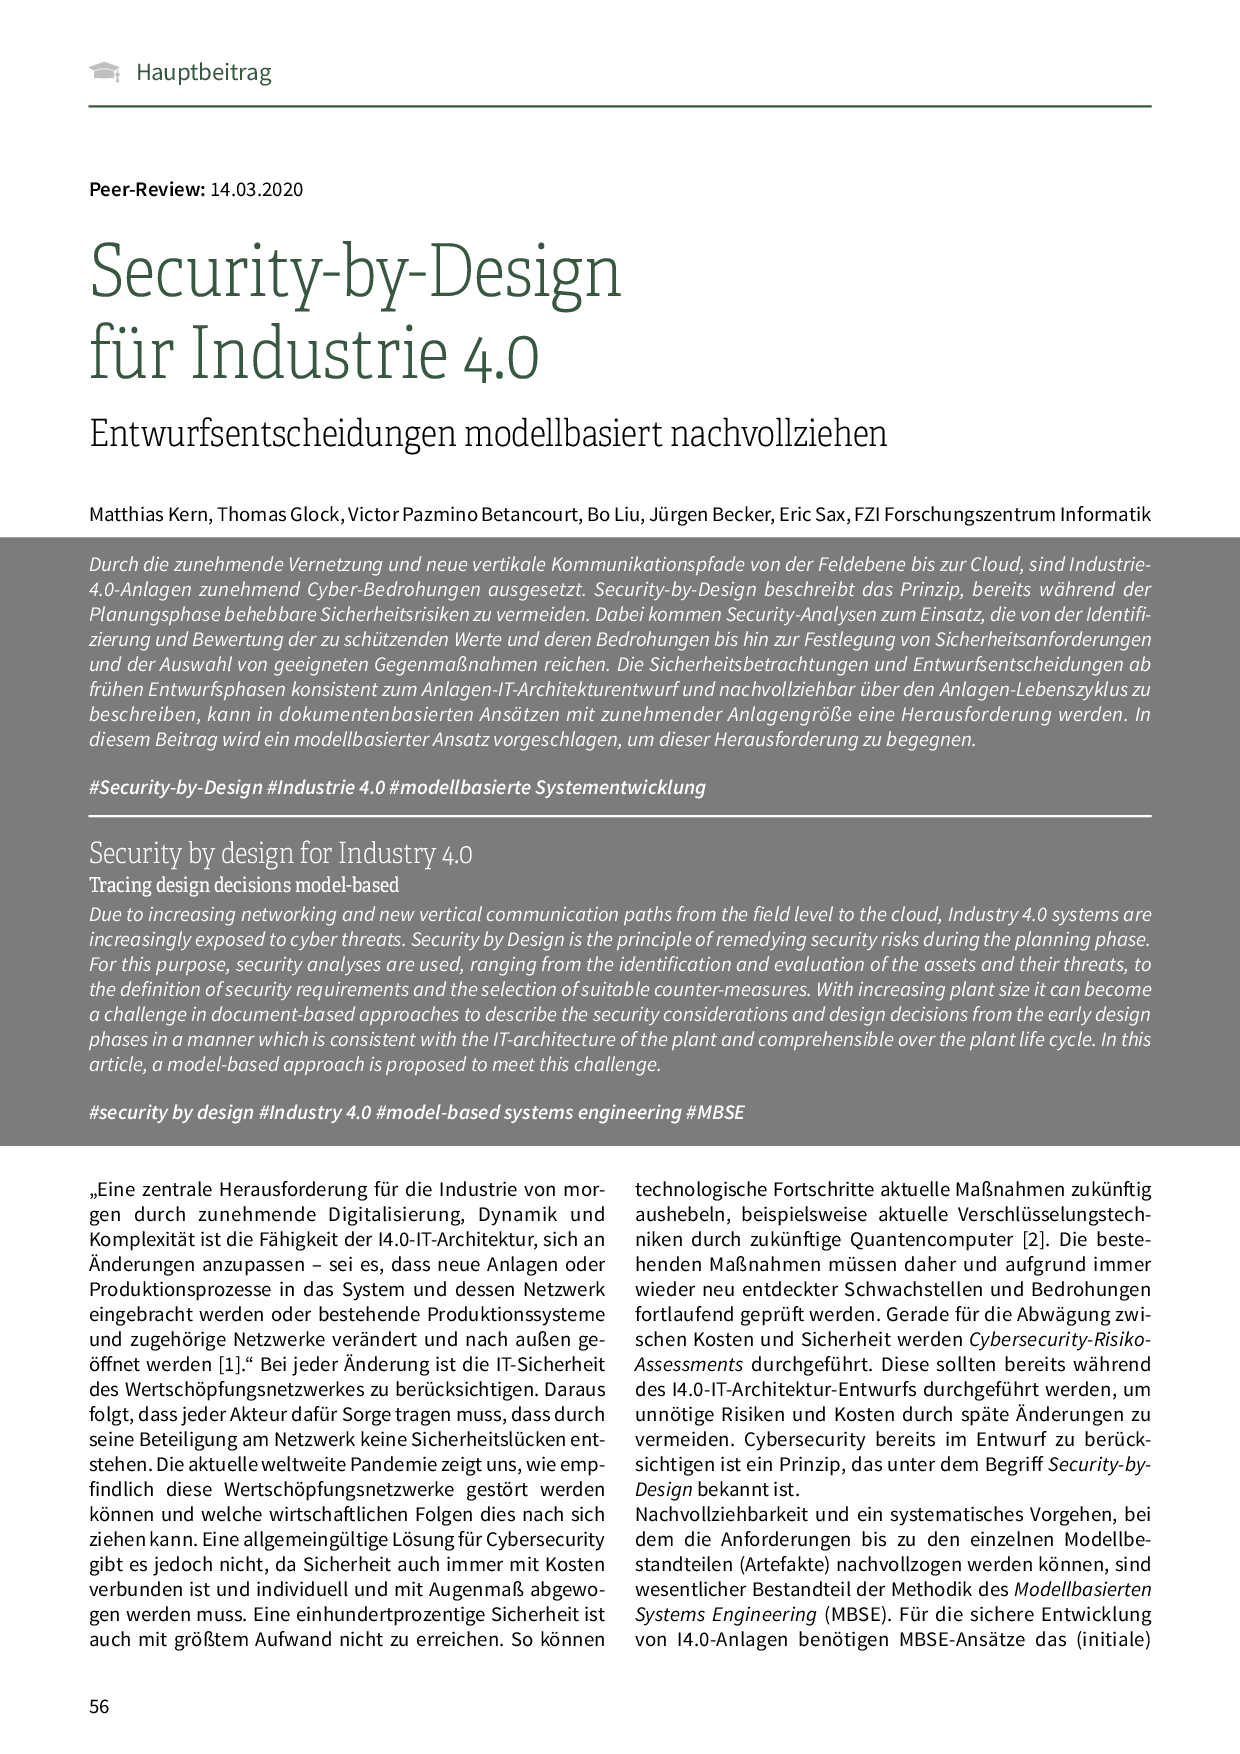 Security-by-Design für Industrie 4.0